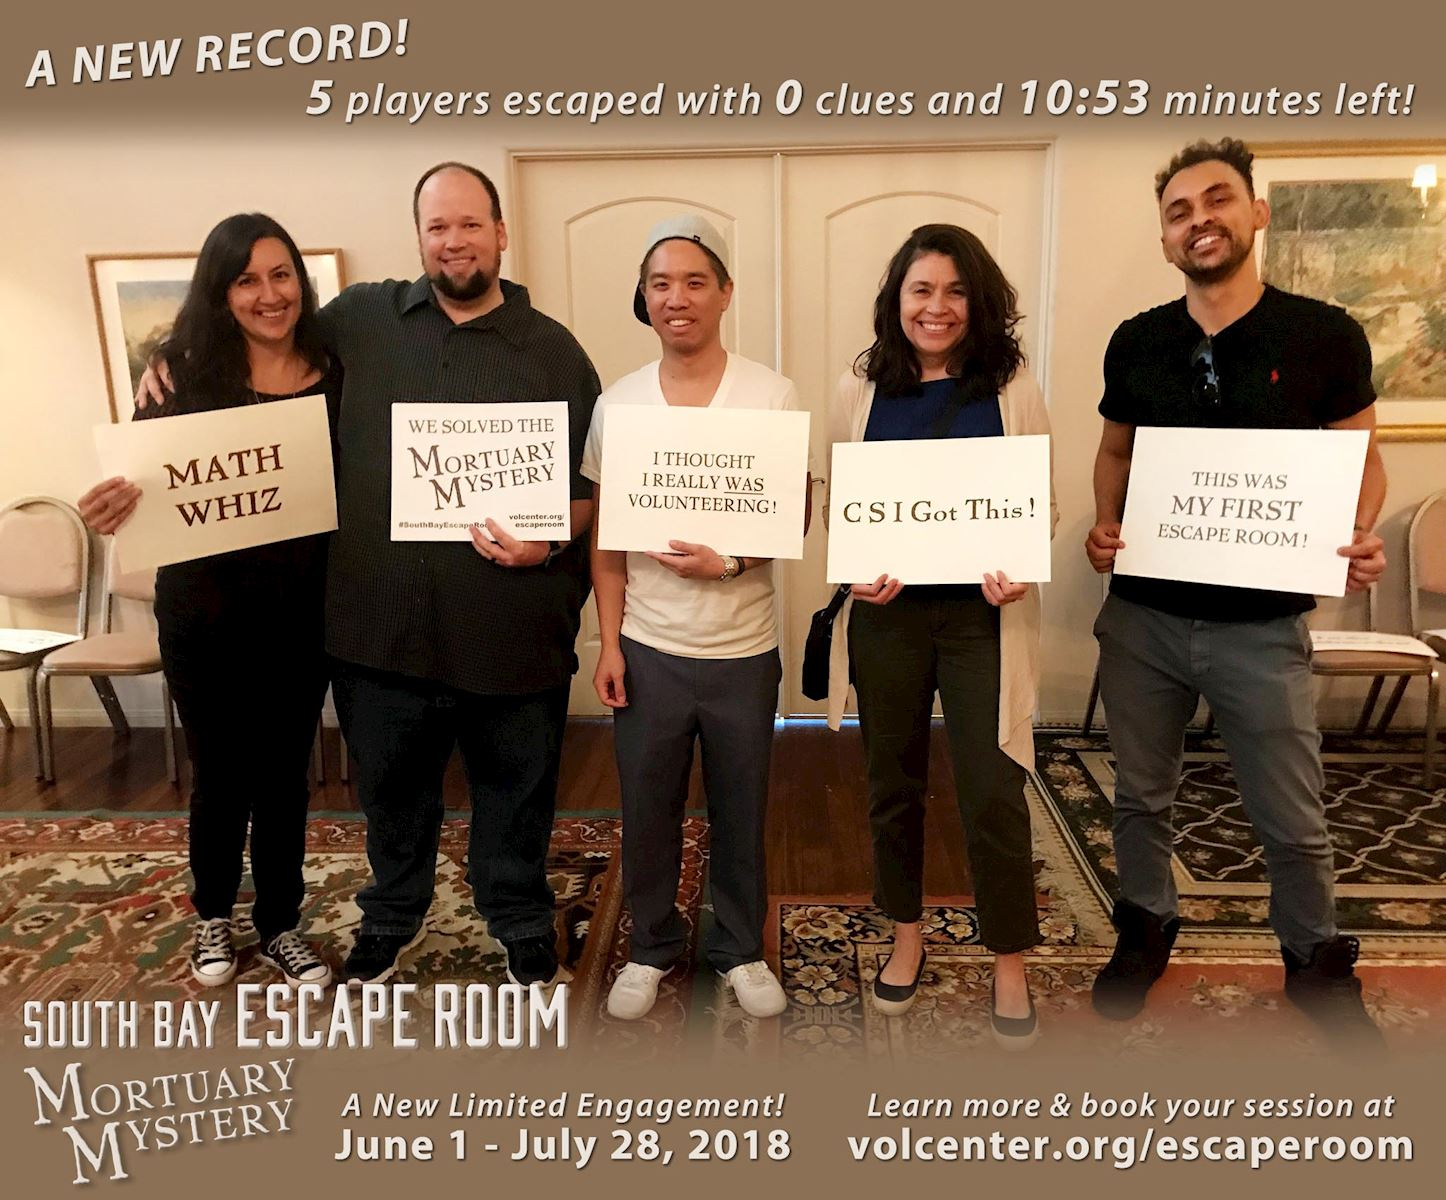 A new record for South Bay Escape Room: Mortuary Mystery!